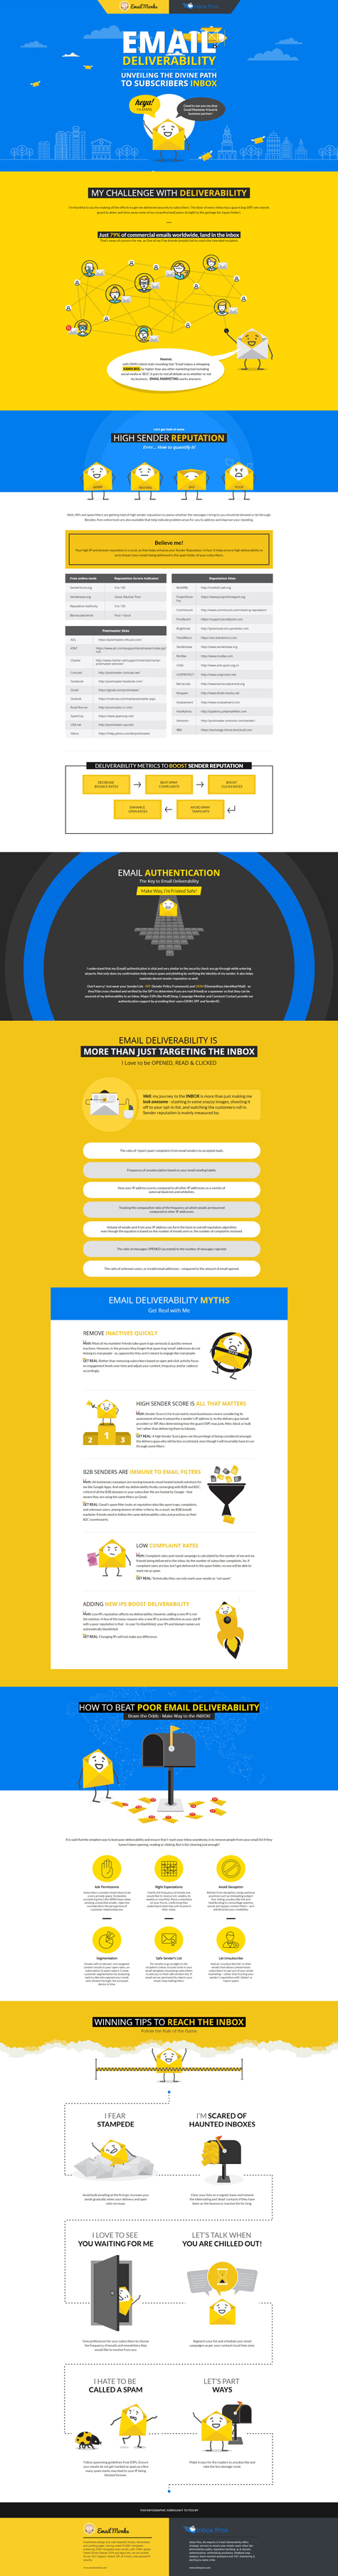 Expert Tips for Receiving Better Email Deliverability Rates [Infographic]